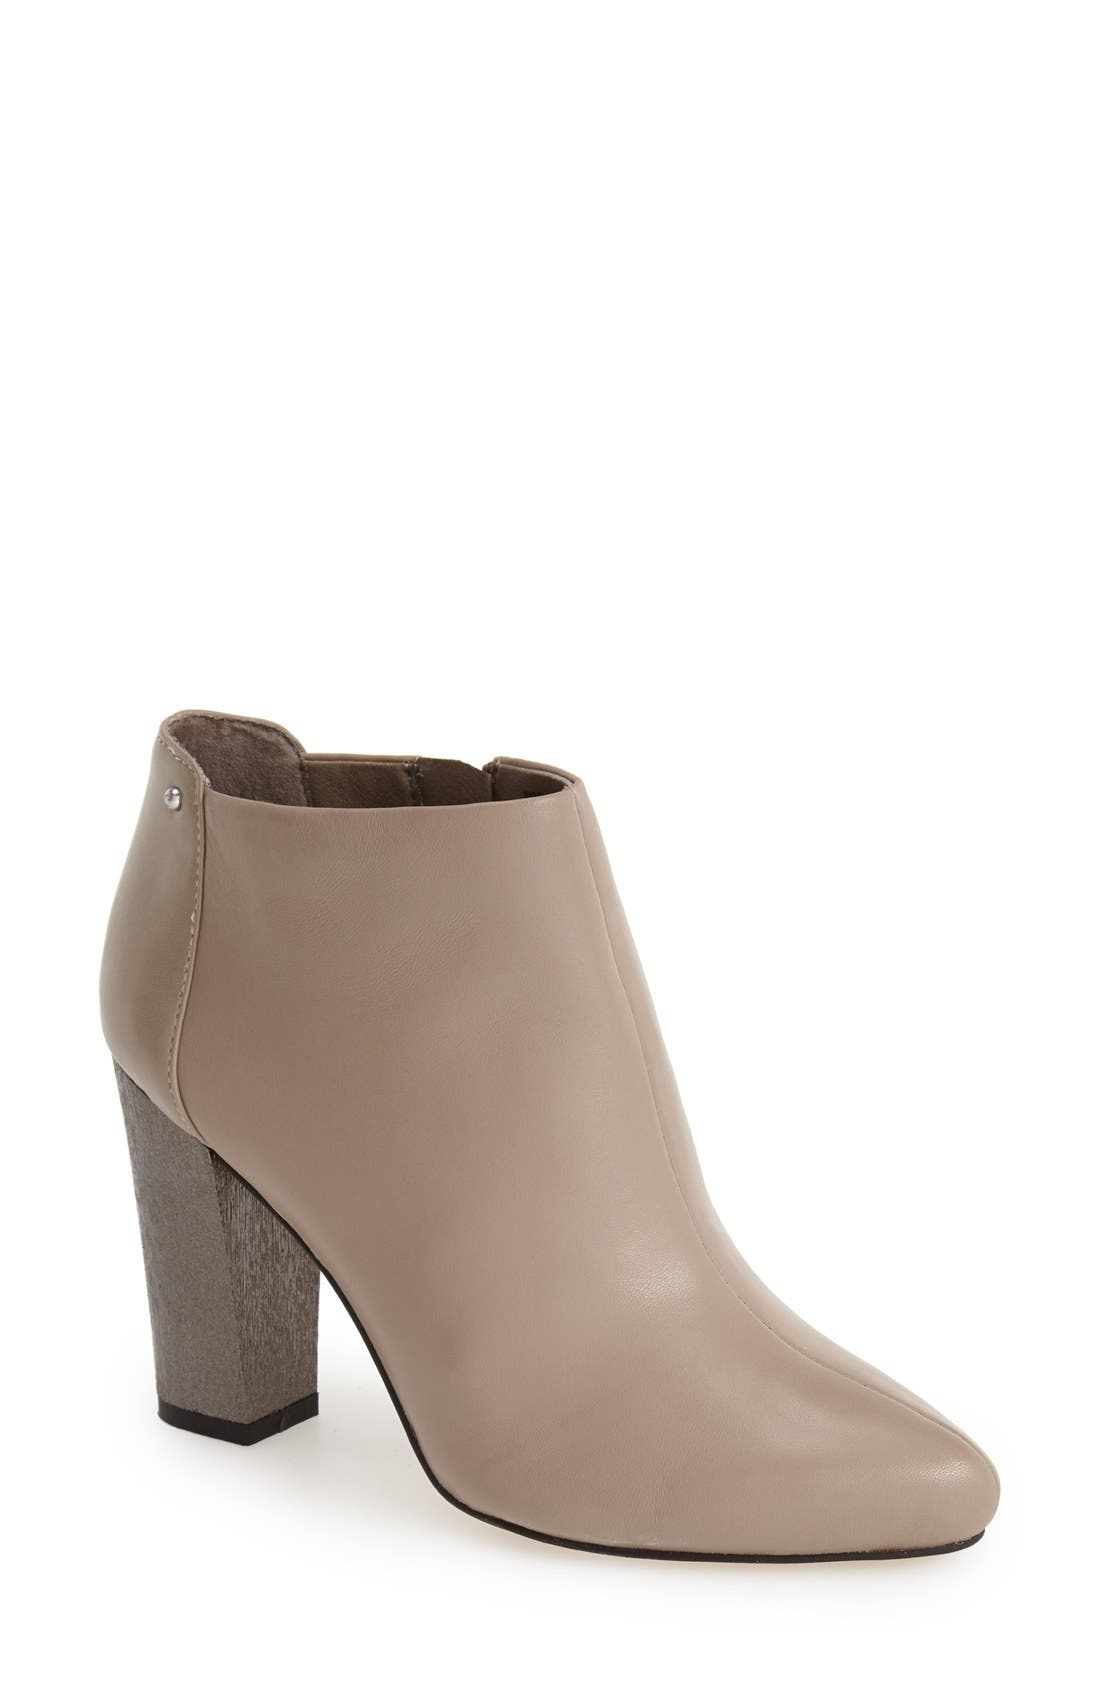 Alternate Image 1 Selected - Circus by Sam Edelman 'Bond' Bootie (Women)